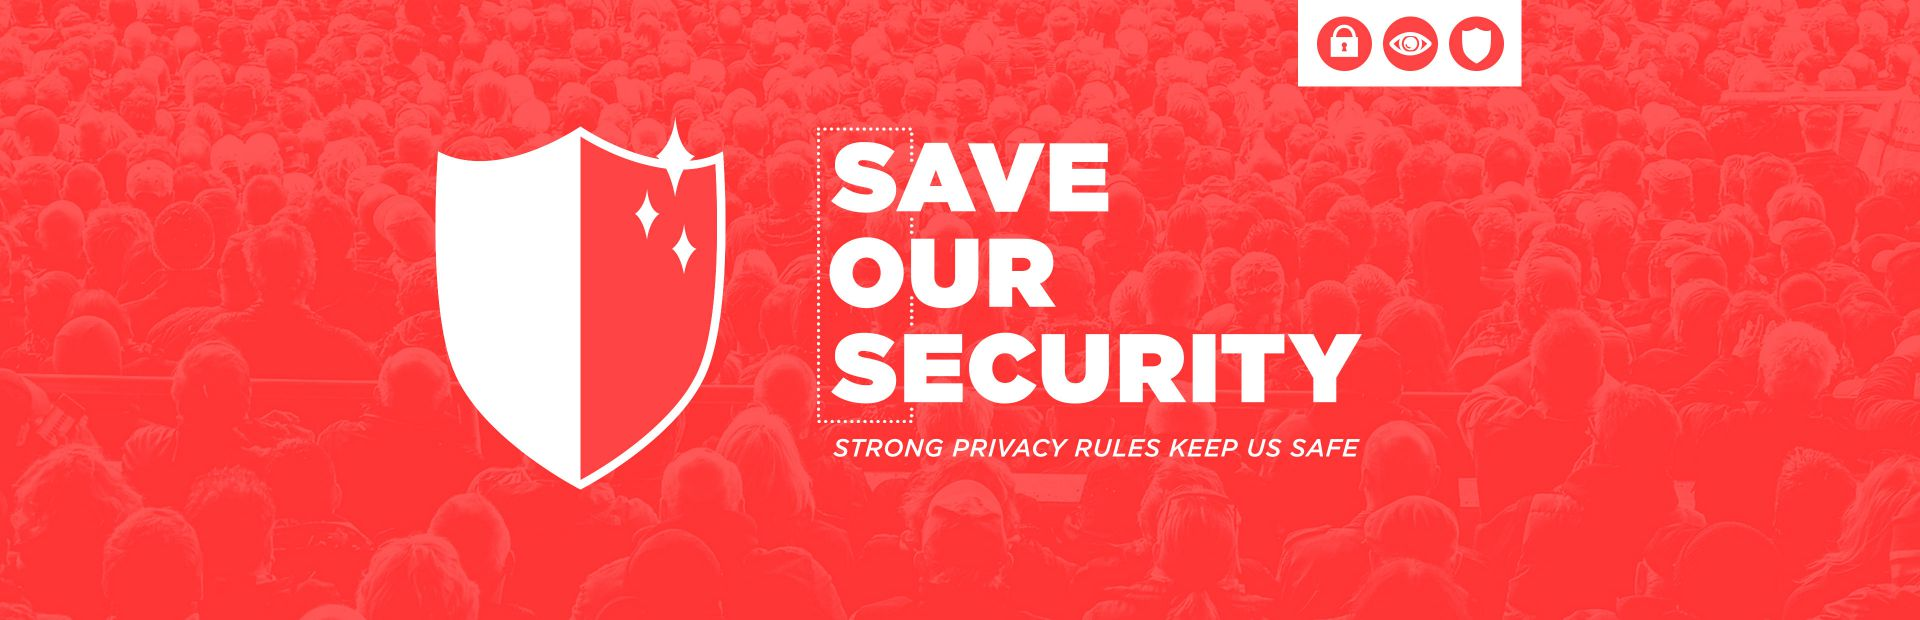 Save our Security